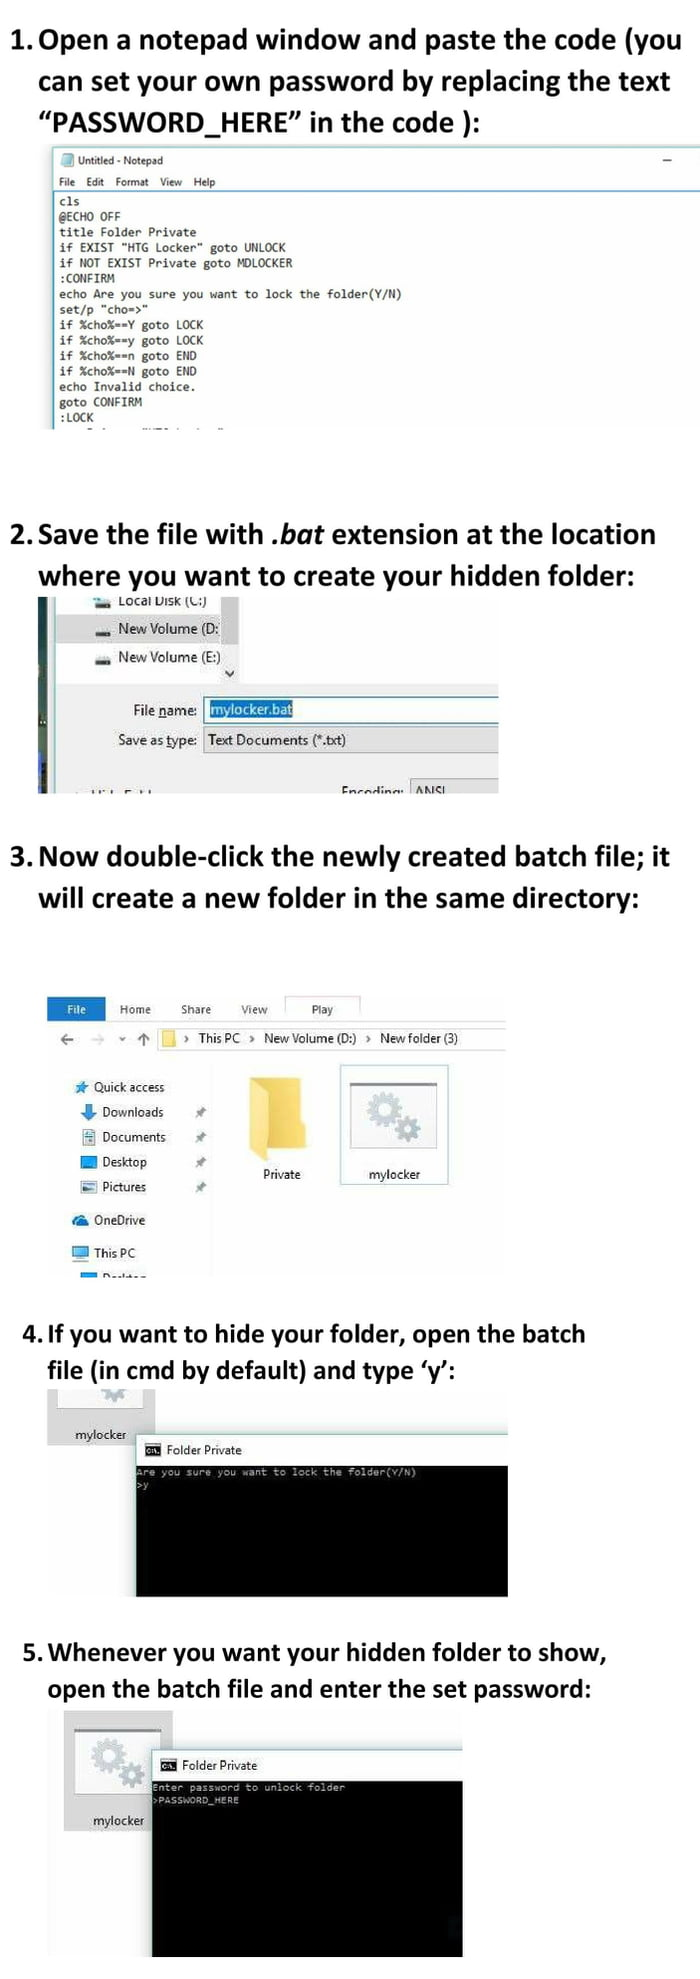 To the hacker OP who was hiding folder using cmd, here is how to